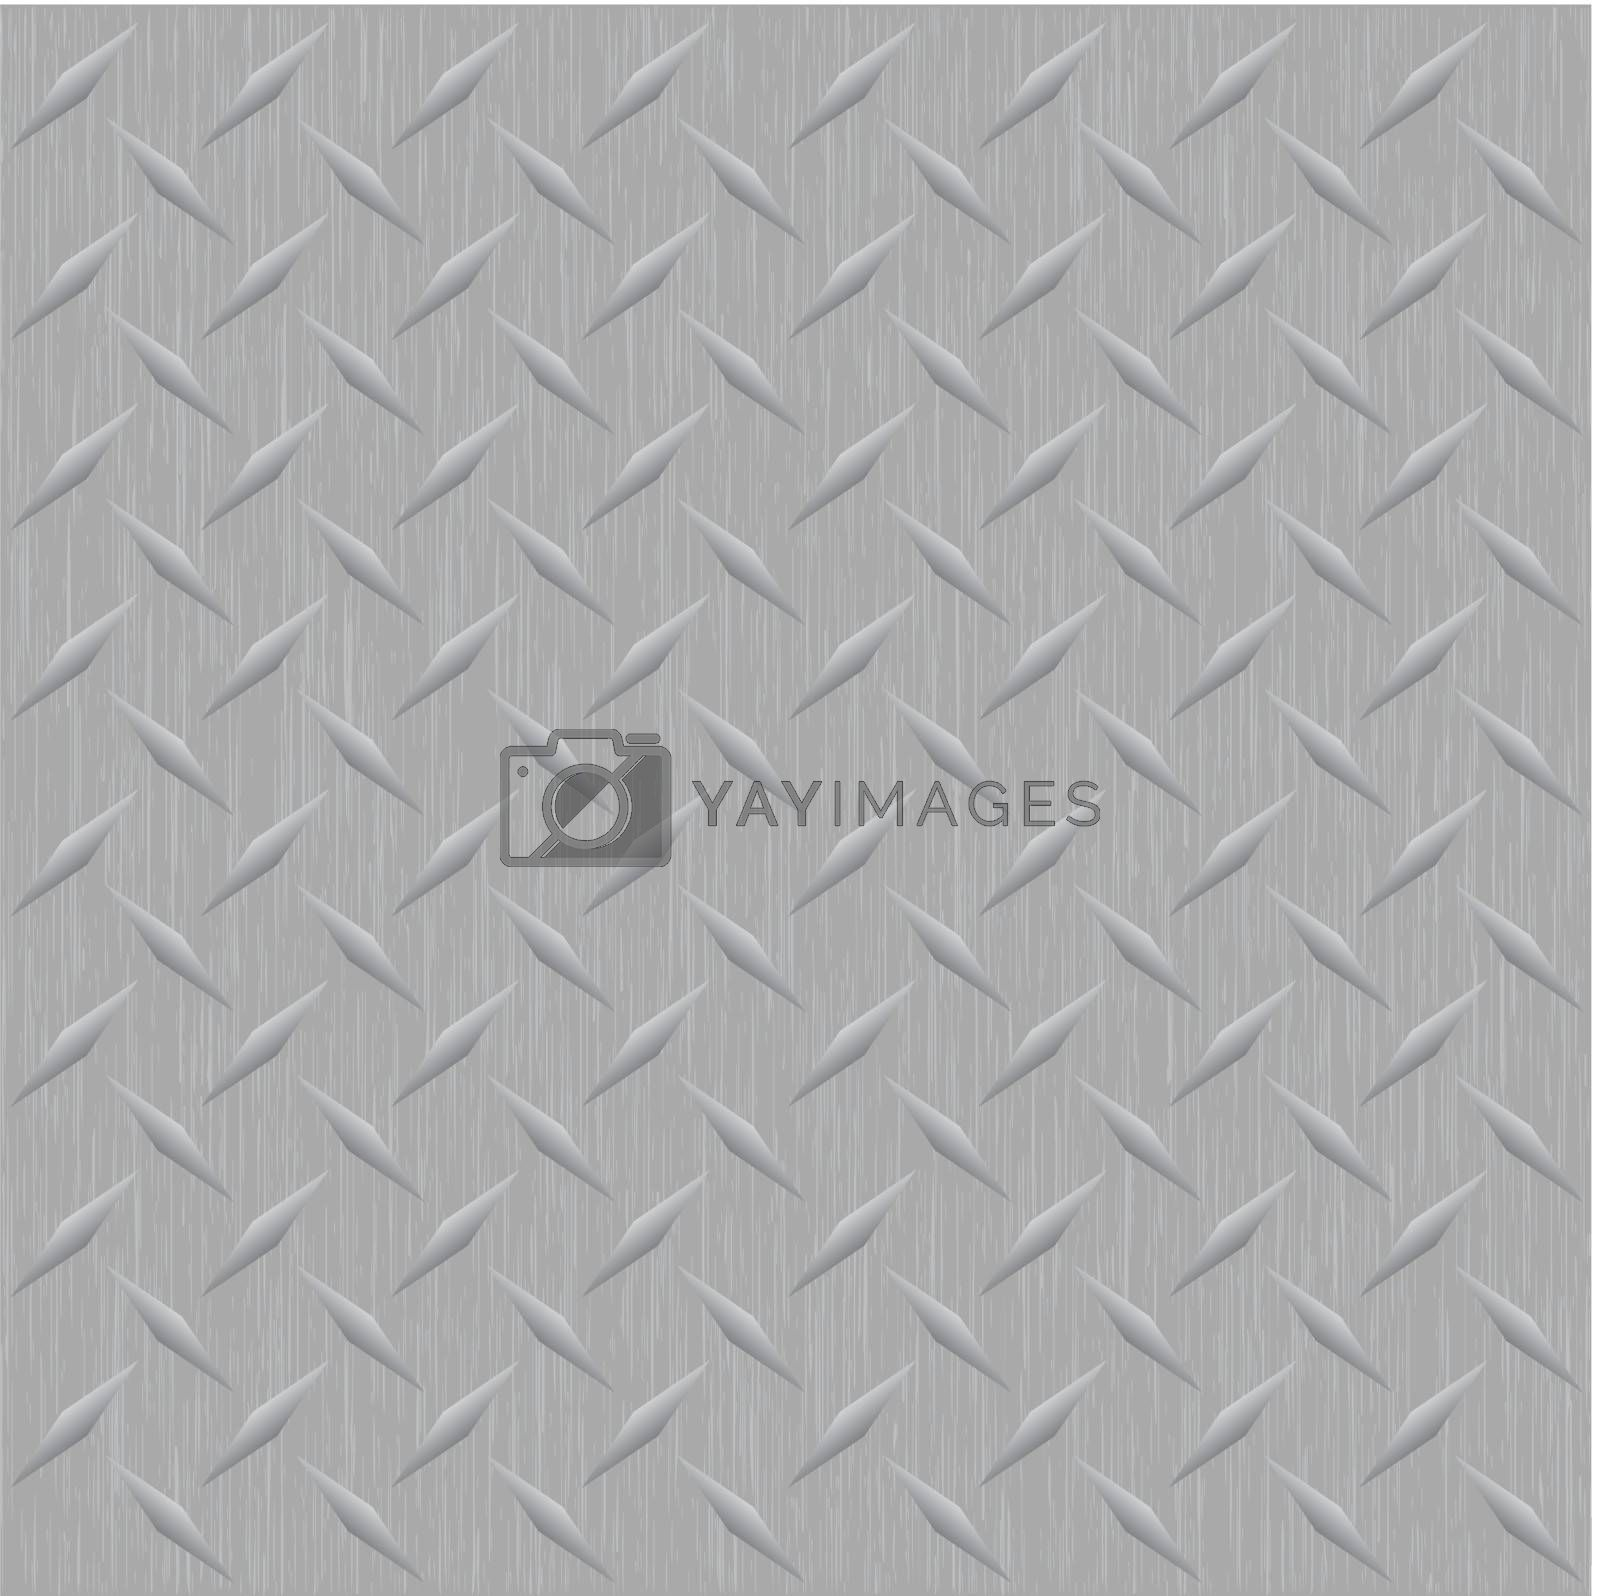 A silver metallic diamond plate vector image that tiles seamlessly in any direction as a pattern.